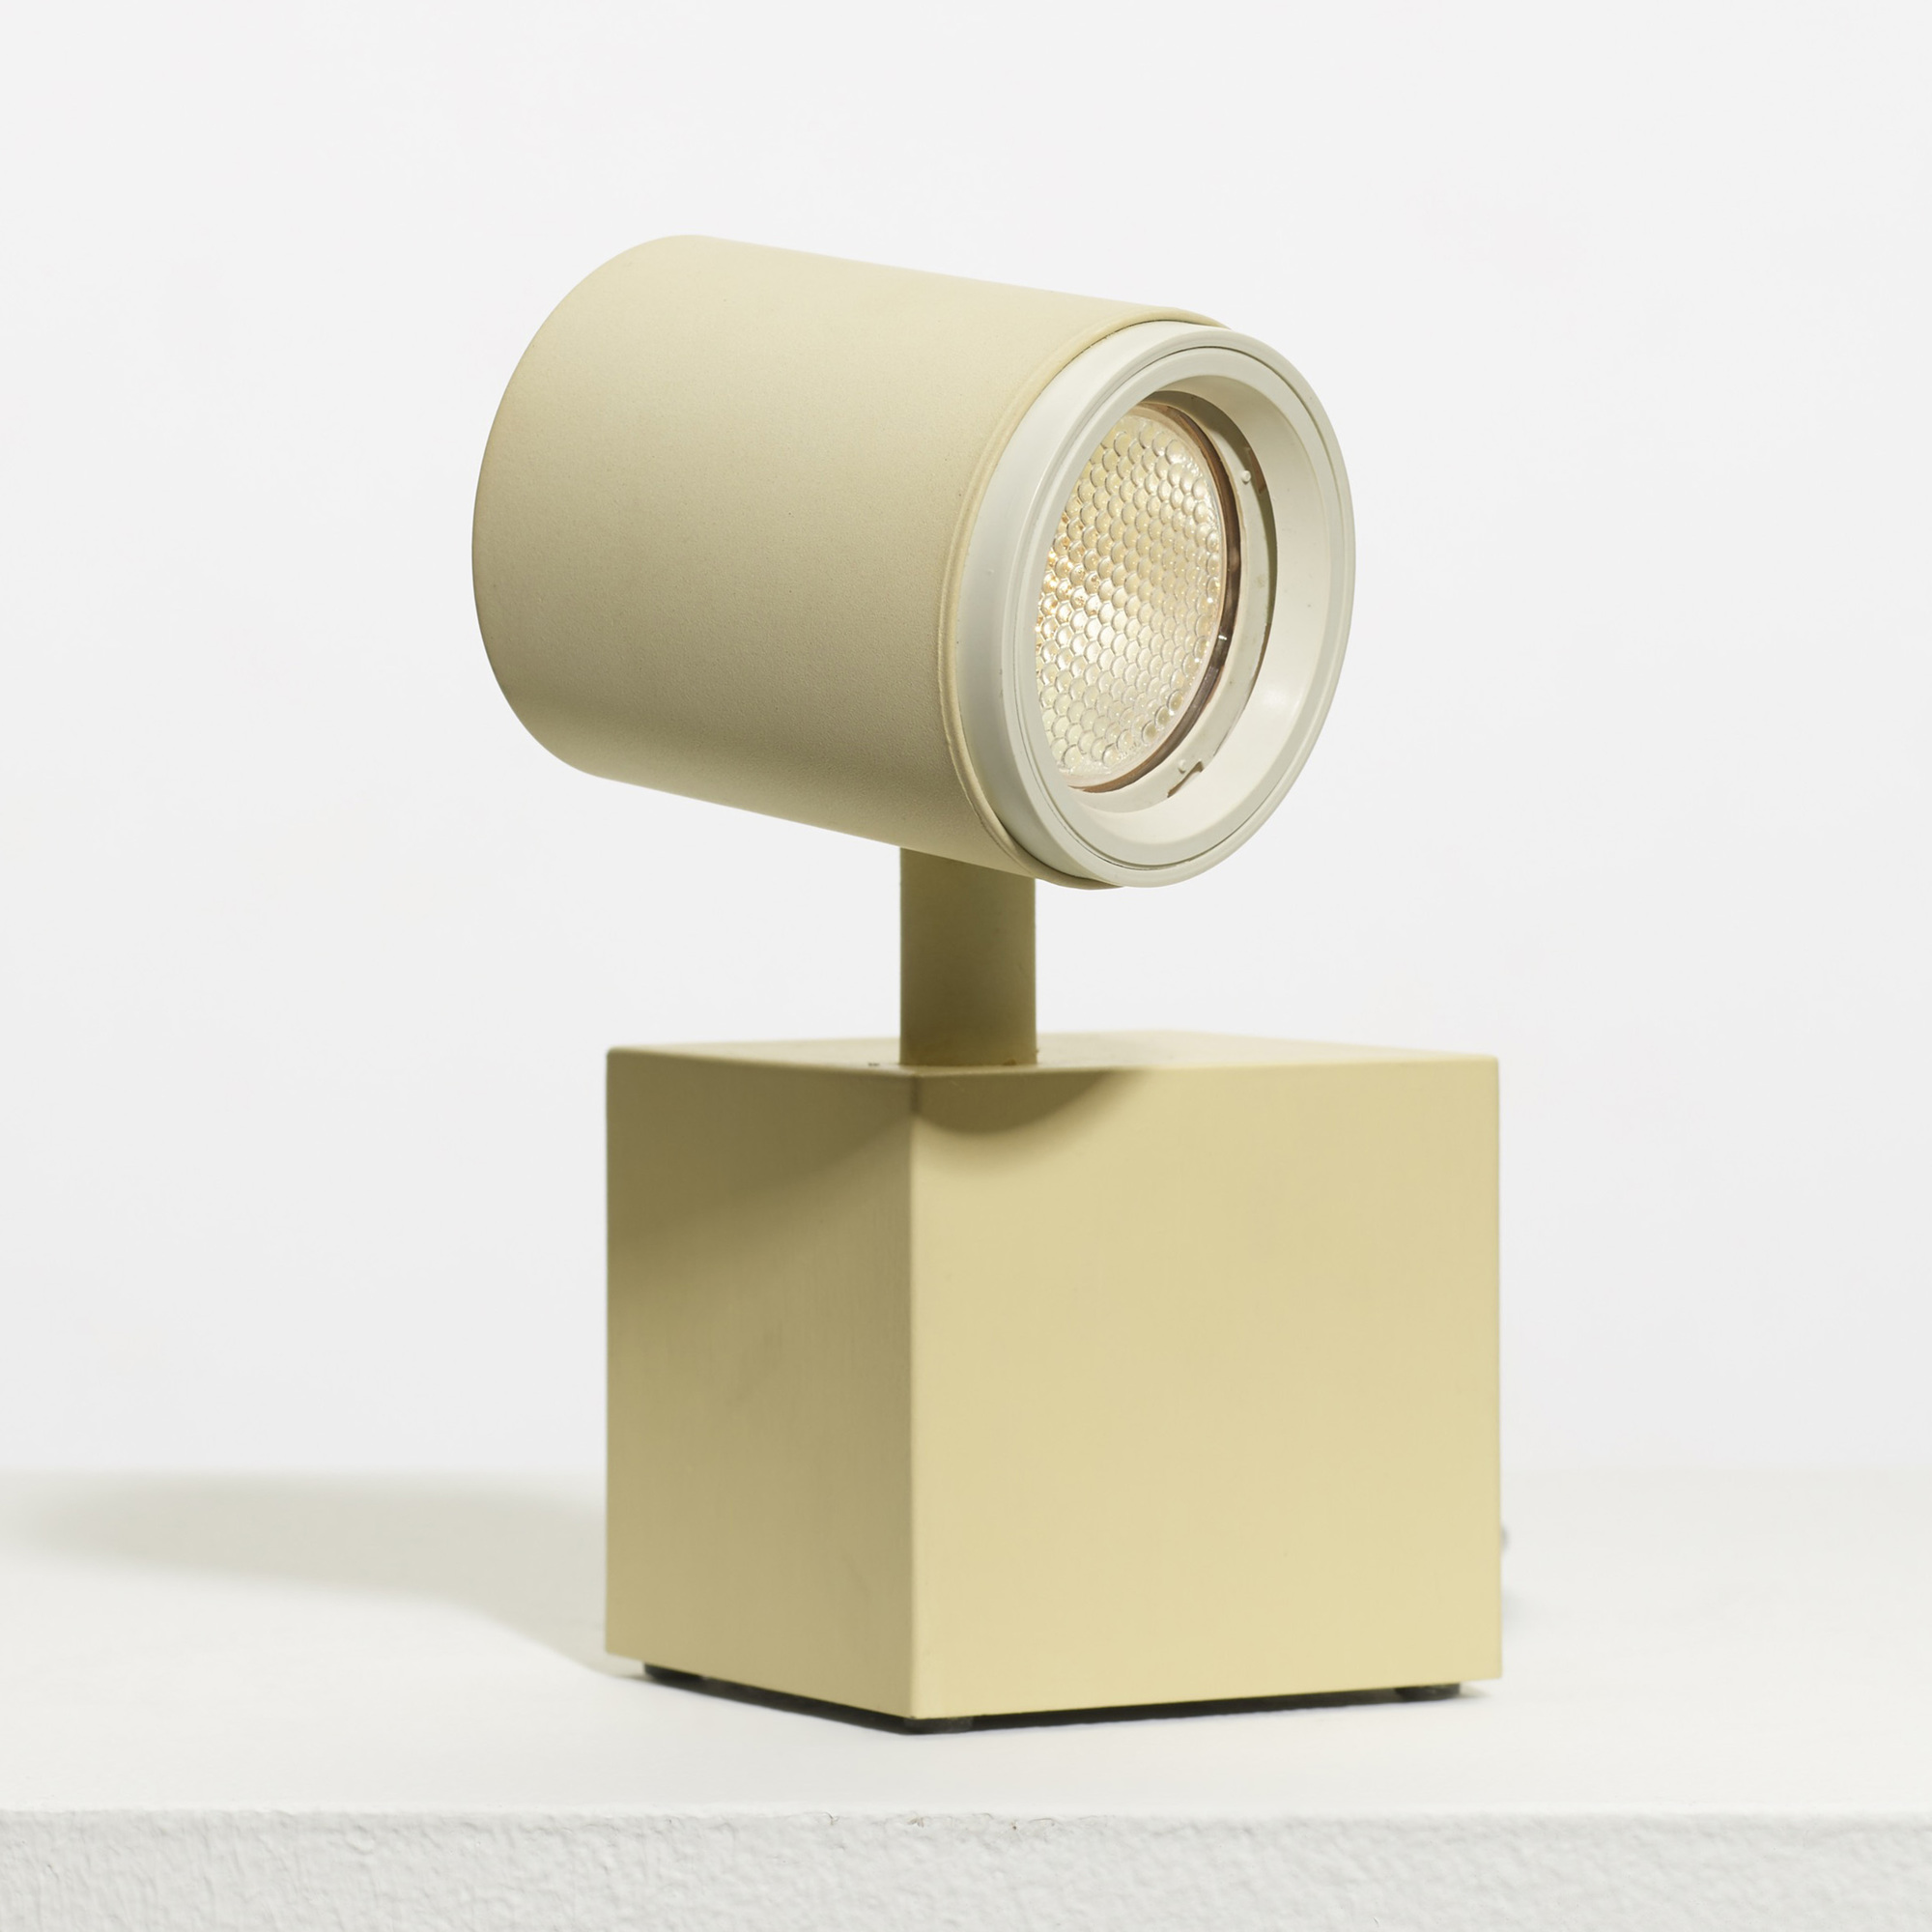 285: Ettore Sottsass / Halo Click I and Halo Click II table lamps (3 of 4)